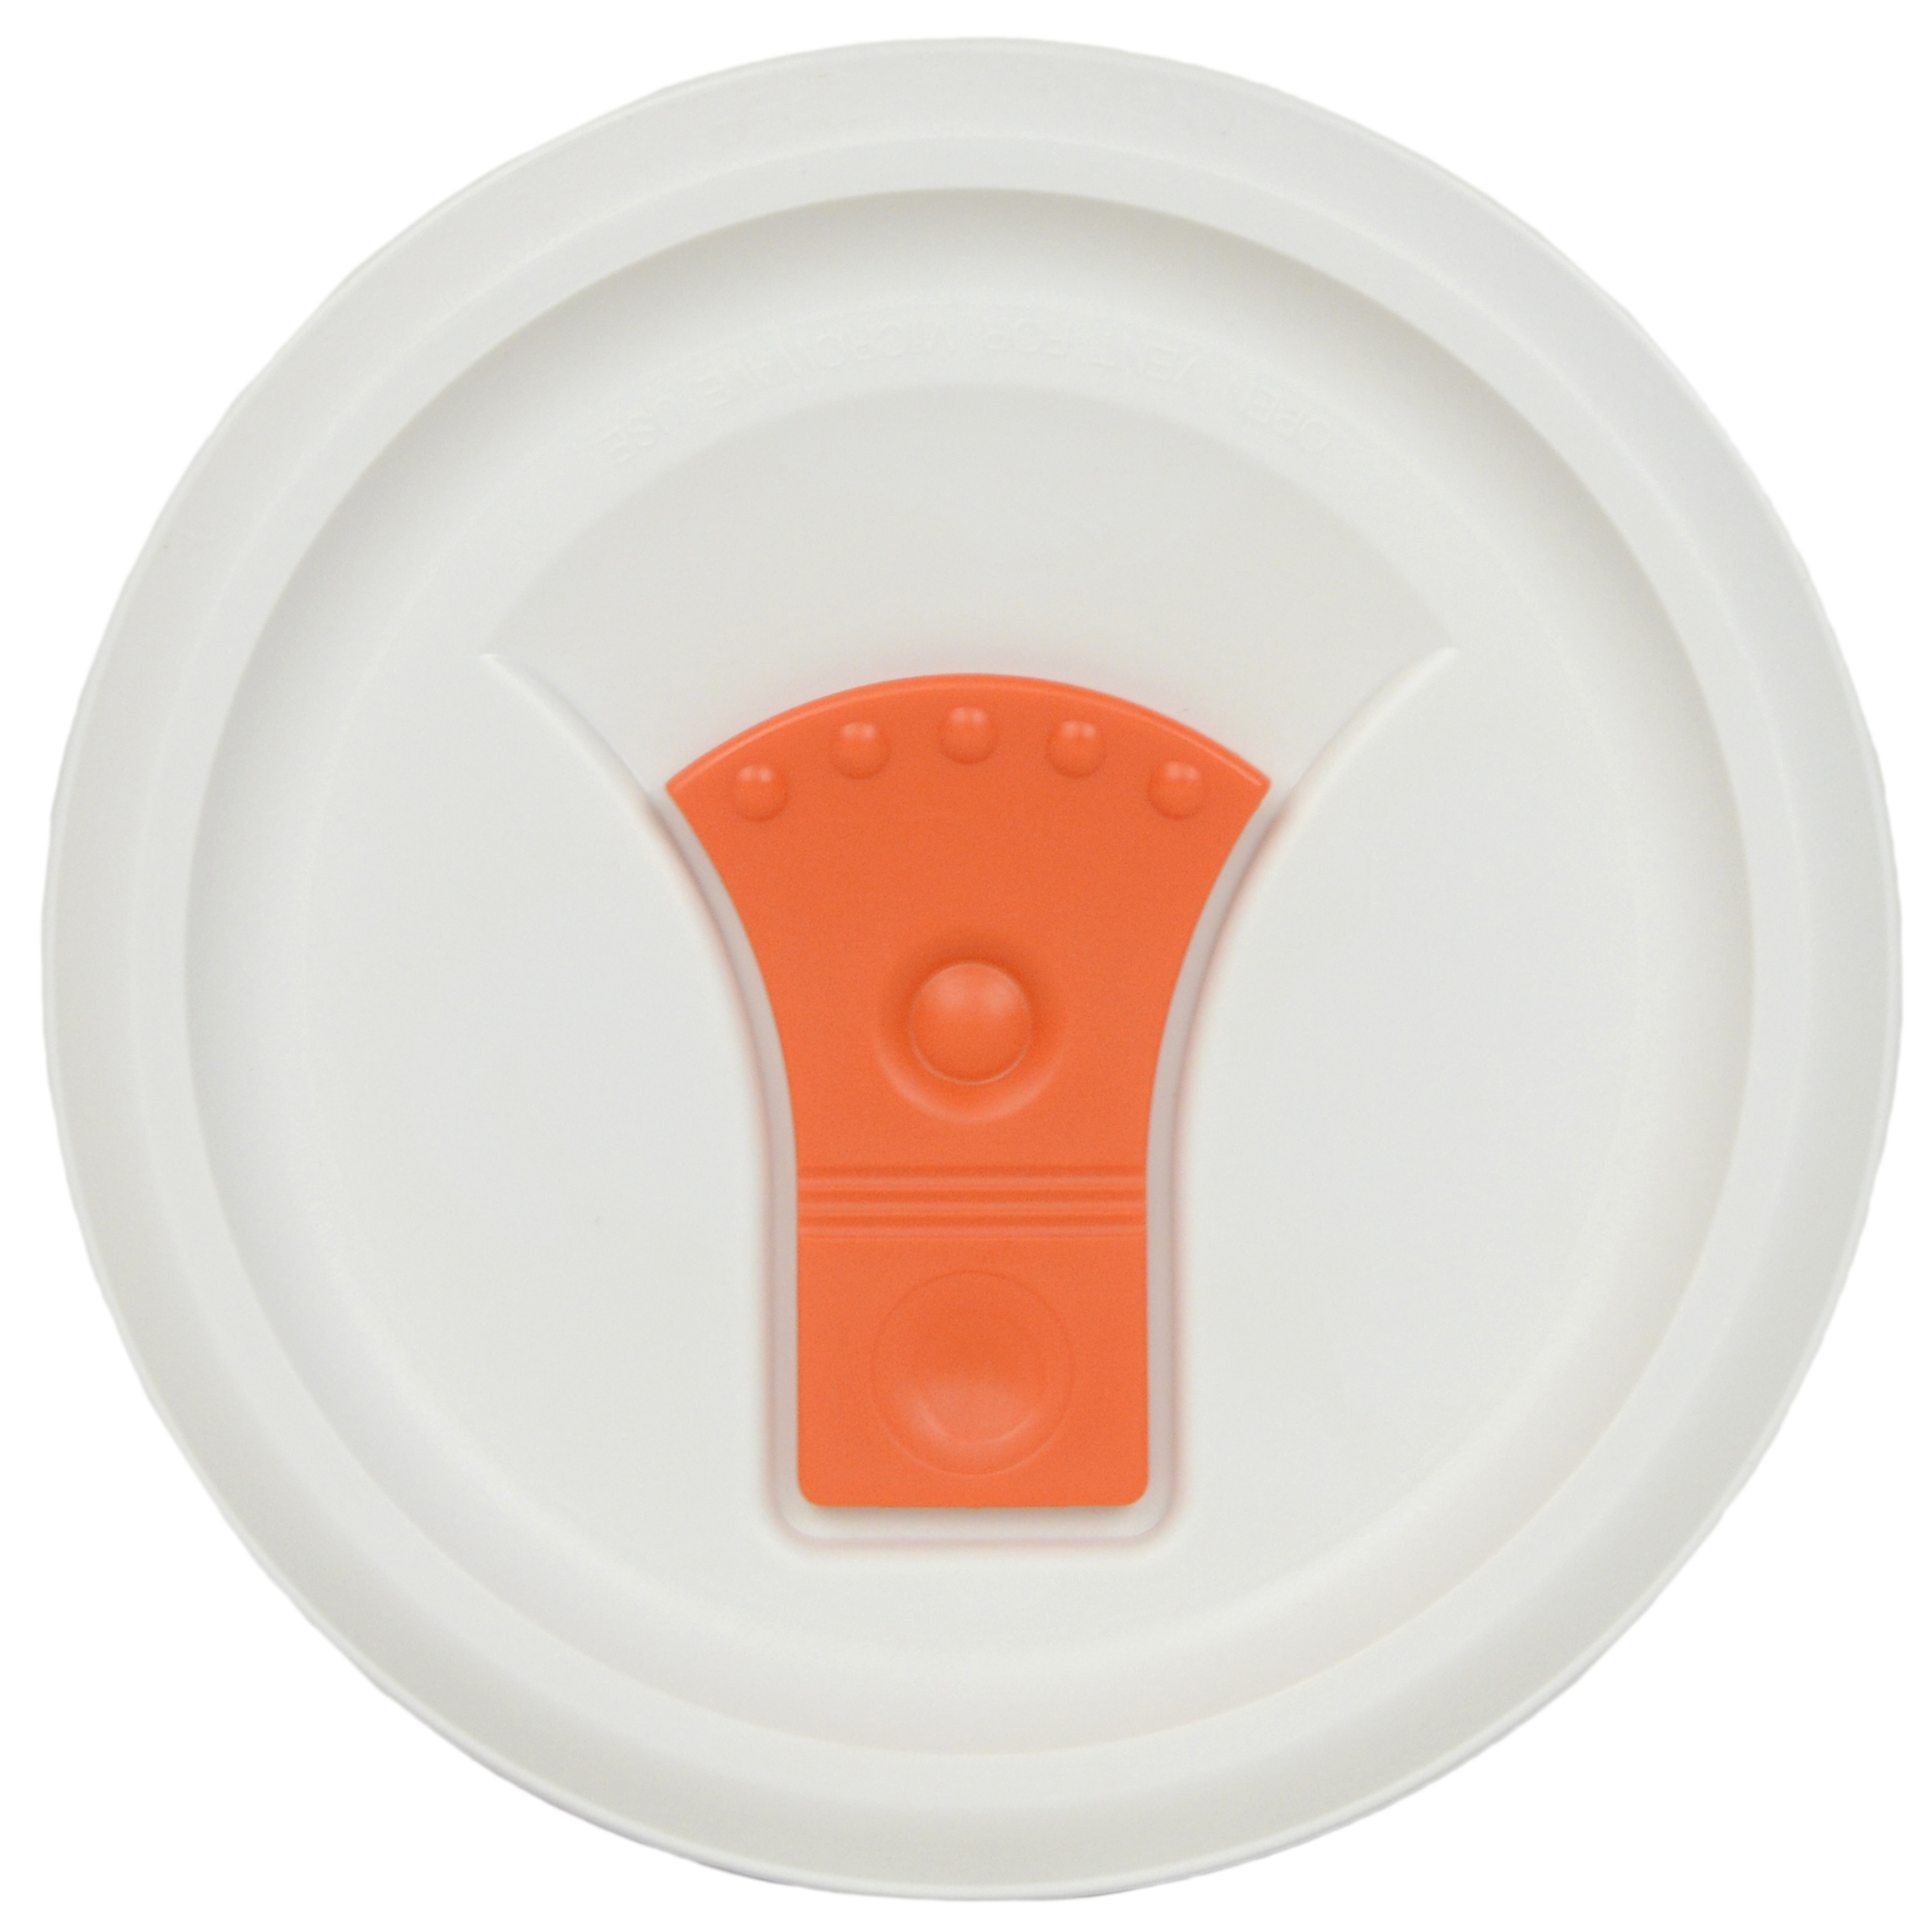 Corningware Replacement Lid FM-22-VPC 20oz Orange and White Round Cover for Corningware F-22 or FM-22 Pop-Ins Soup Mug (Sold Separately)